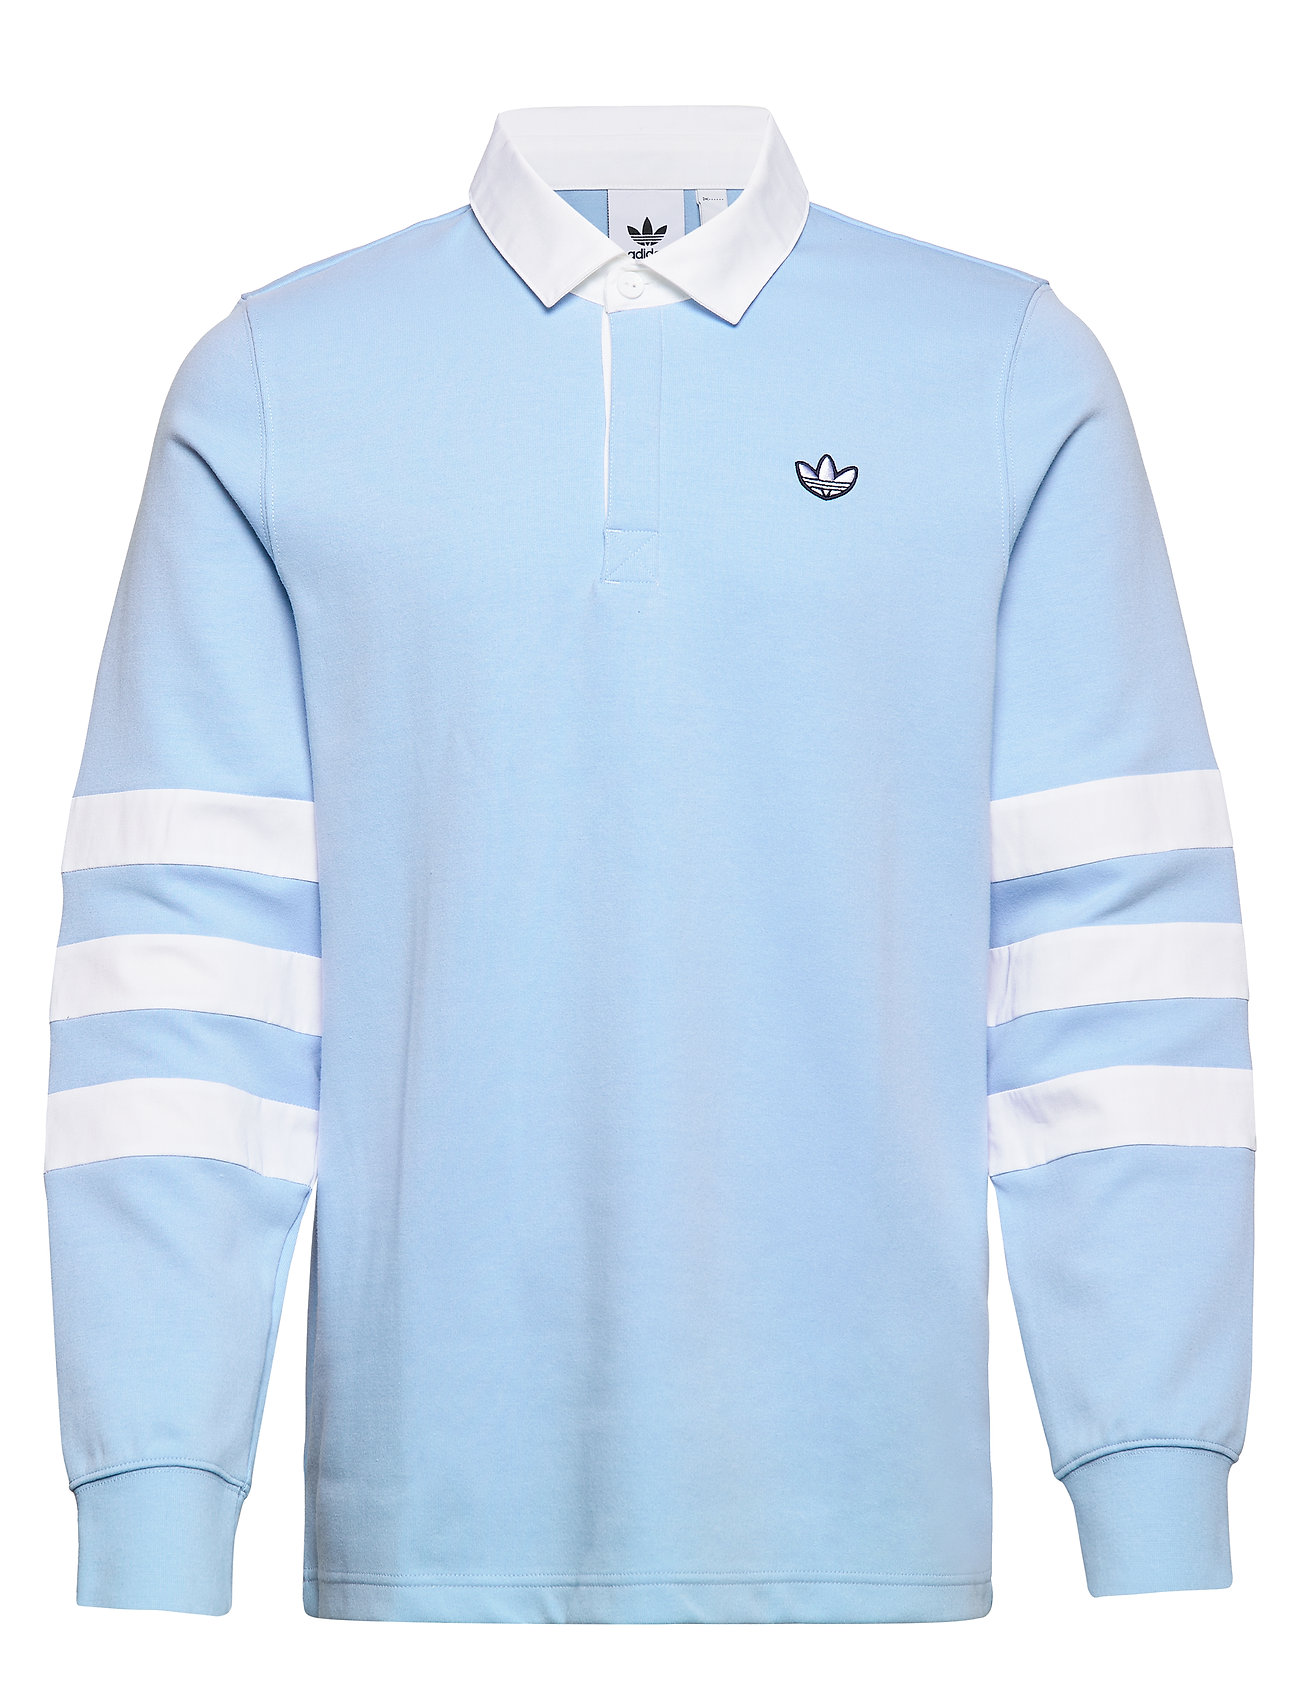 adidas Originals RUGBY SHIRT - CLESKY